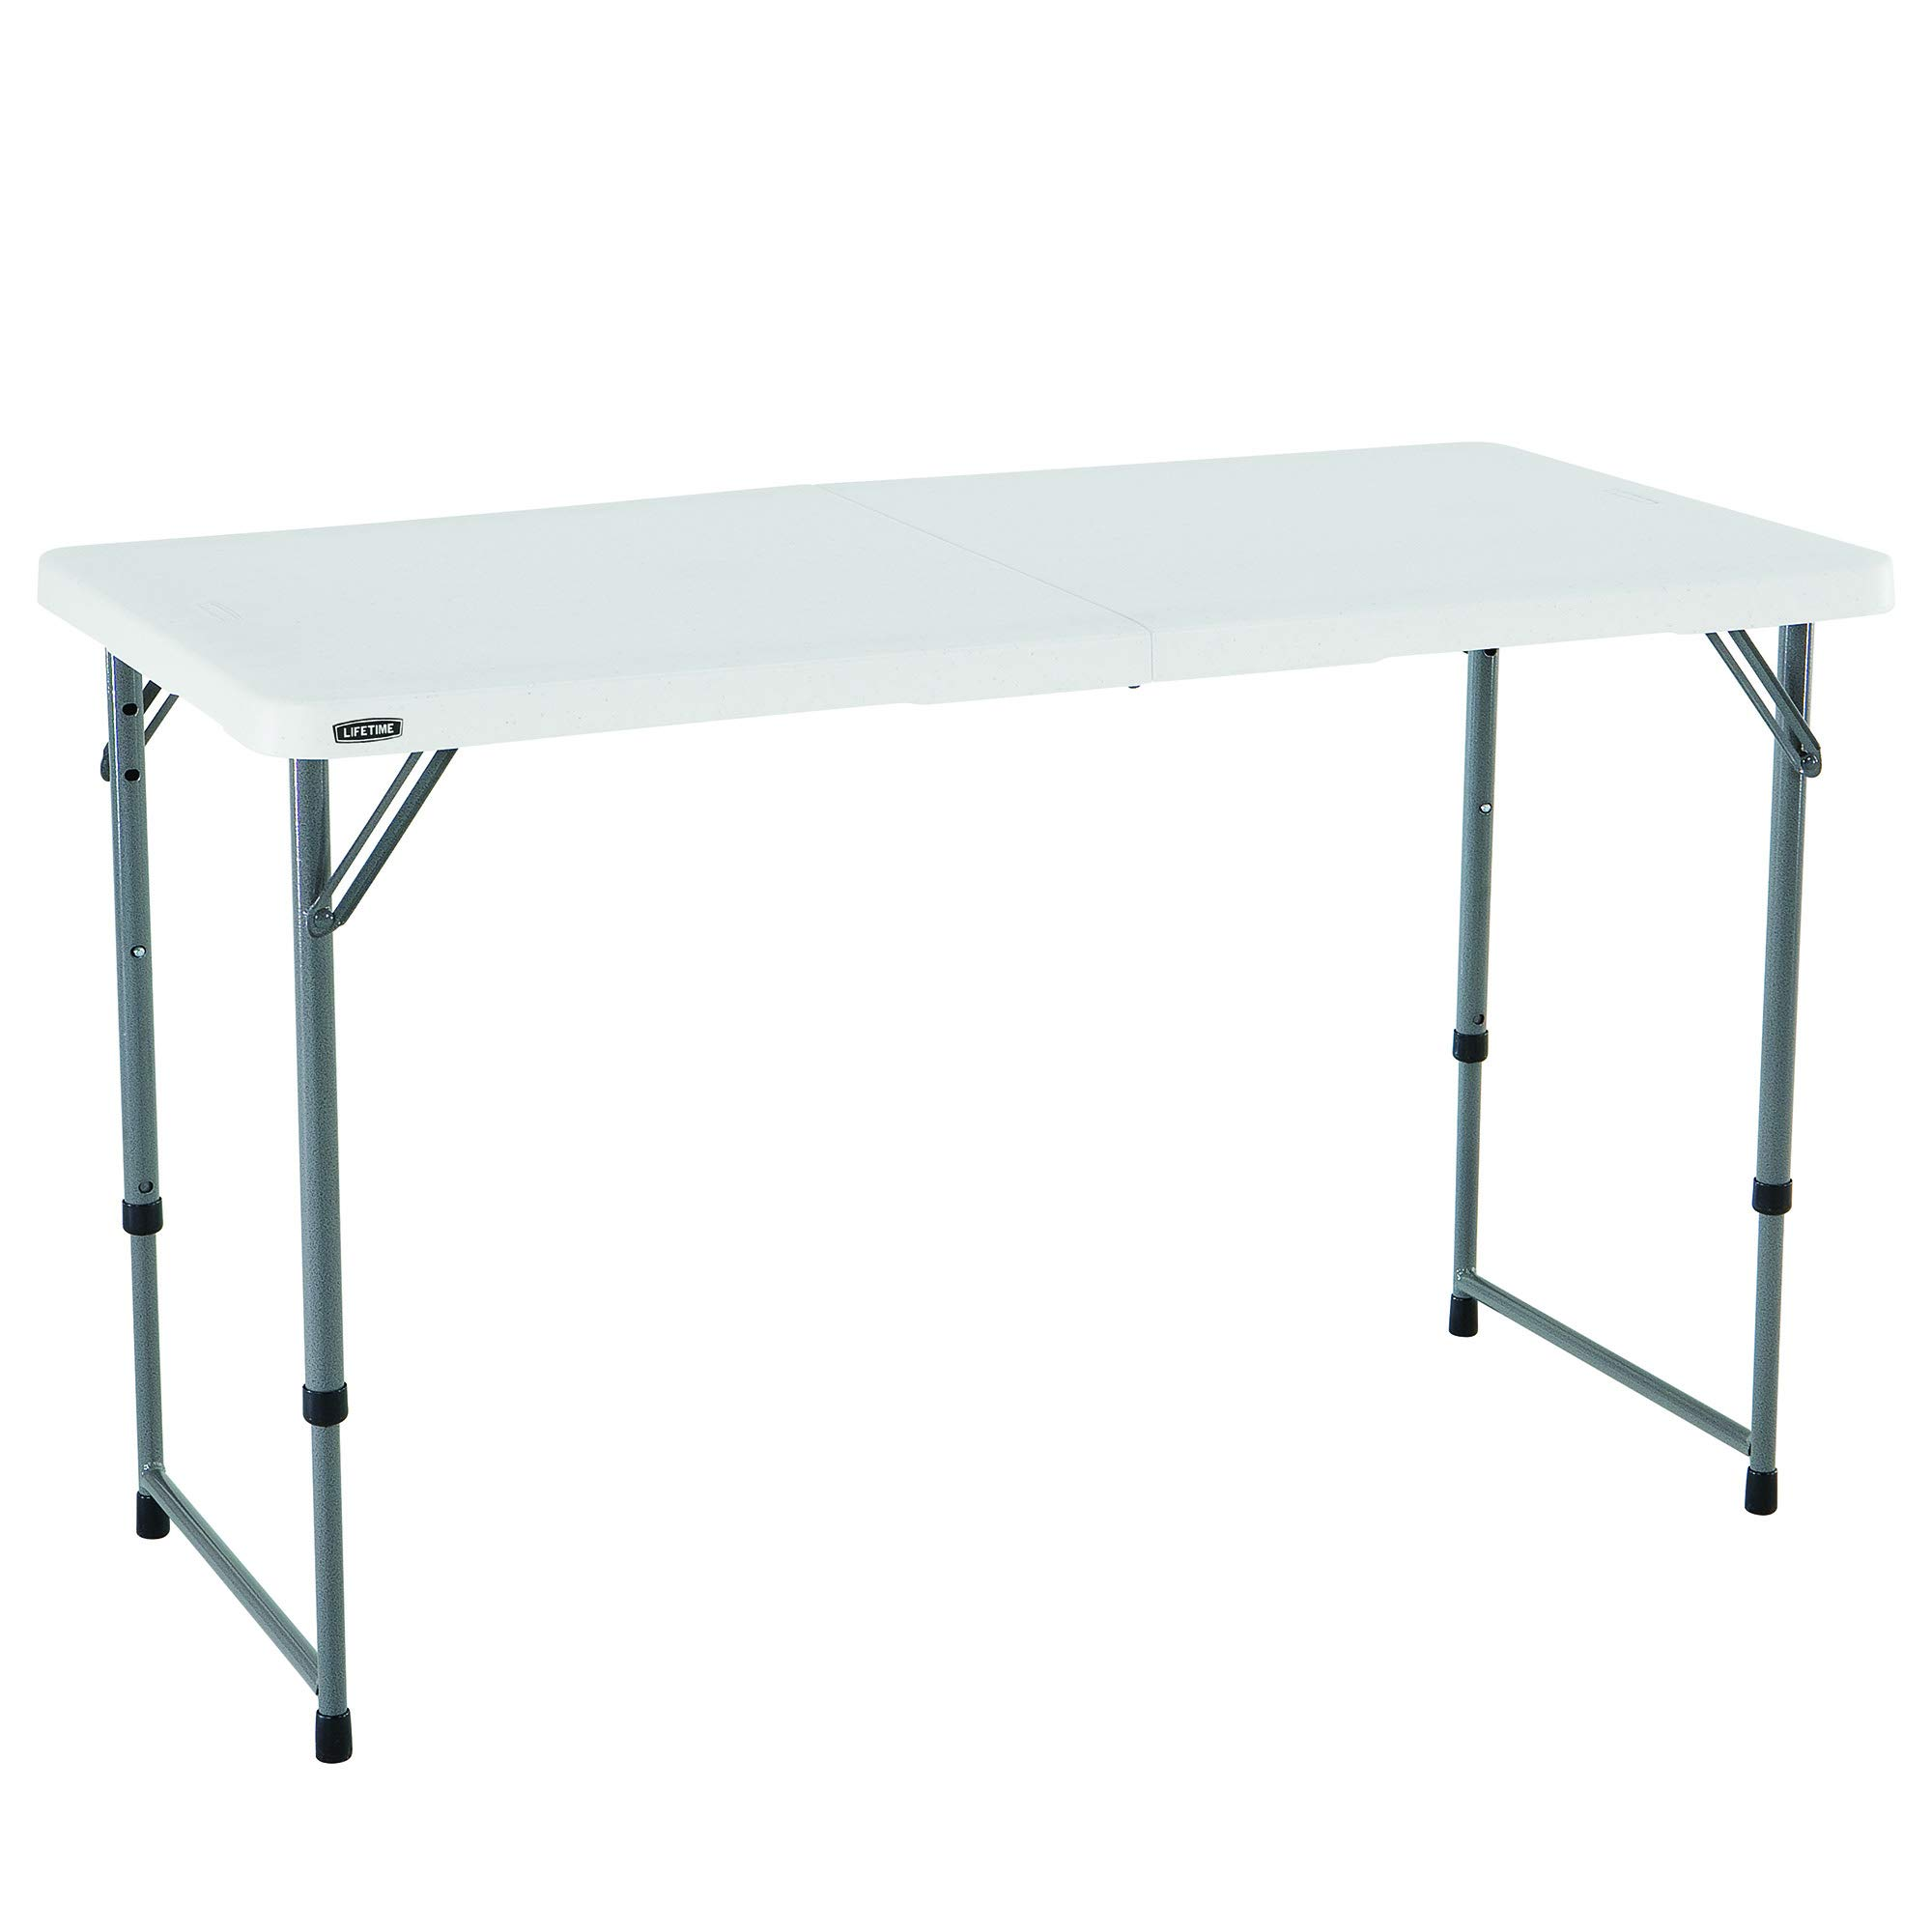 Lifetime 4428 Height Adjustable Craft, Camping and Utility Folding Table, 4 ft White by Lifetime